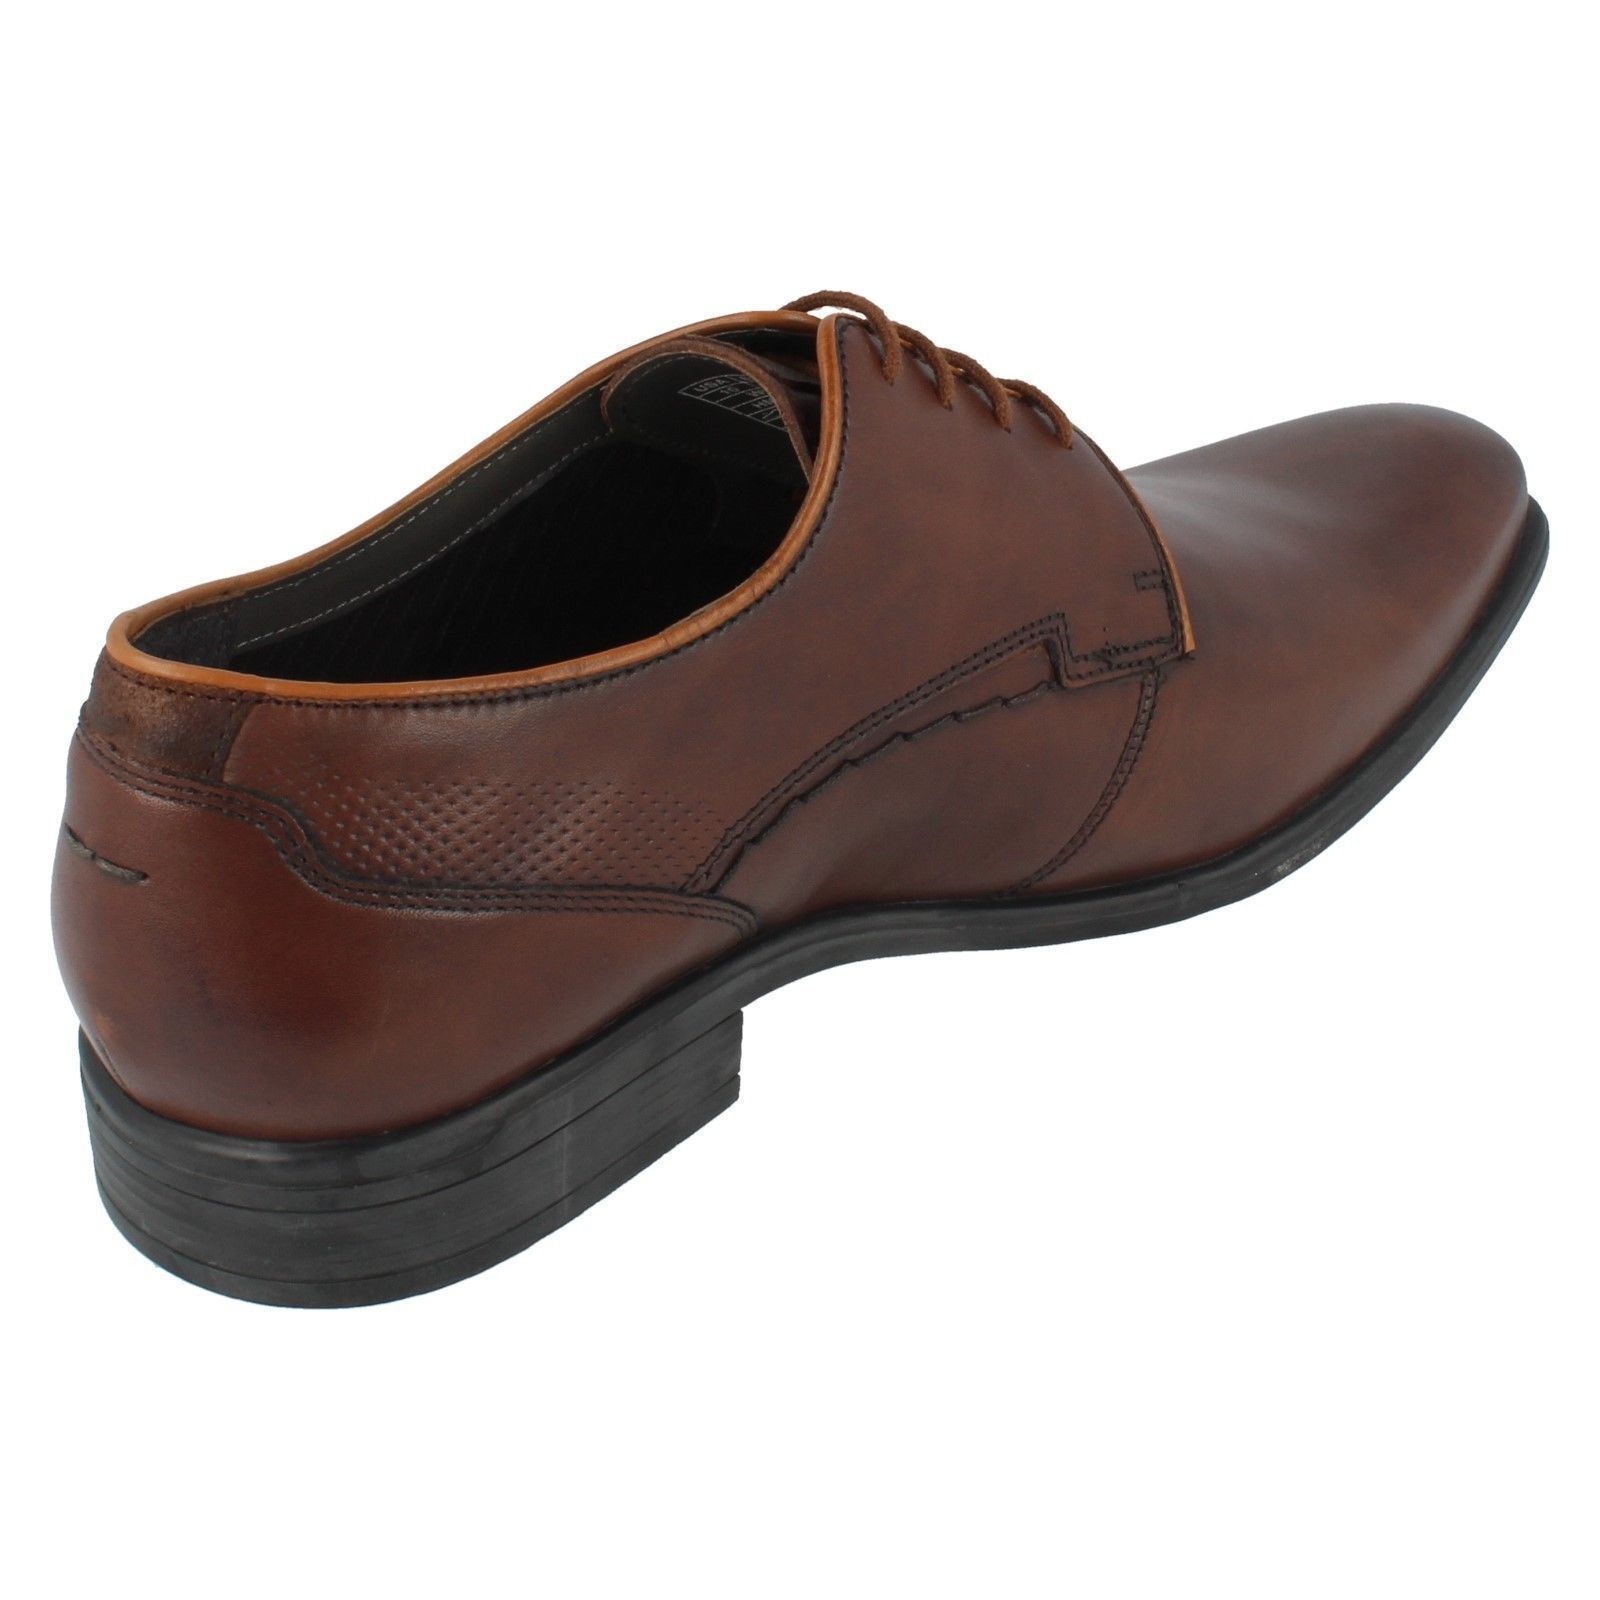 Mens Puppies Braun Leder Lace Up Hush Puppies Mens Schuhes - Kane Maddow fd0230